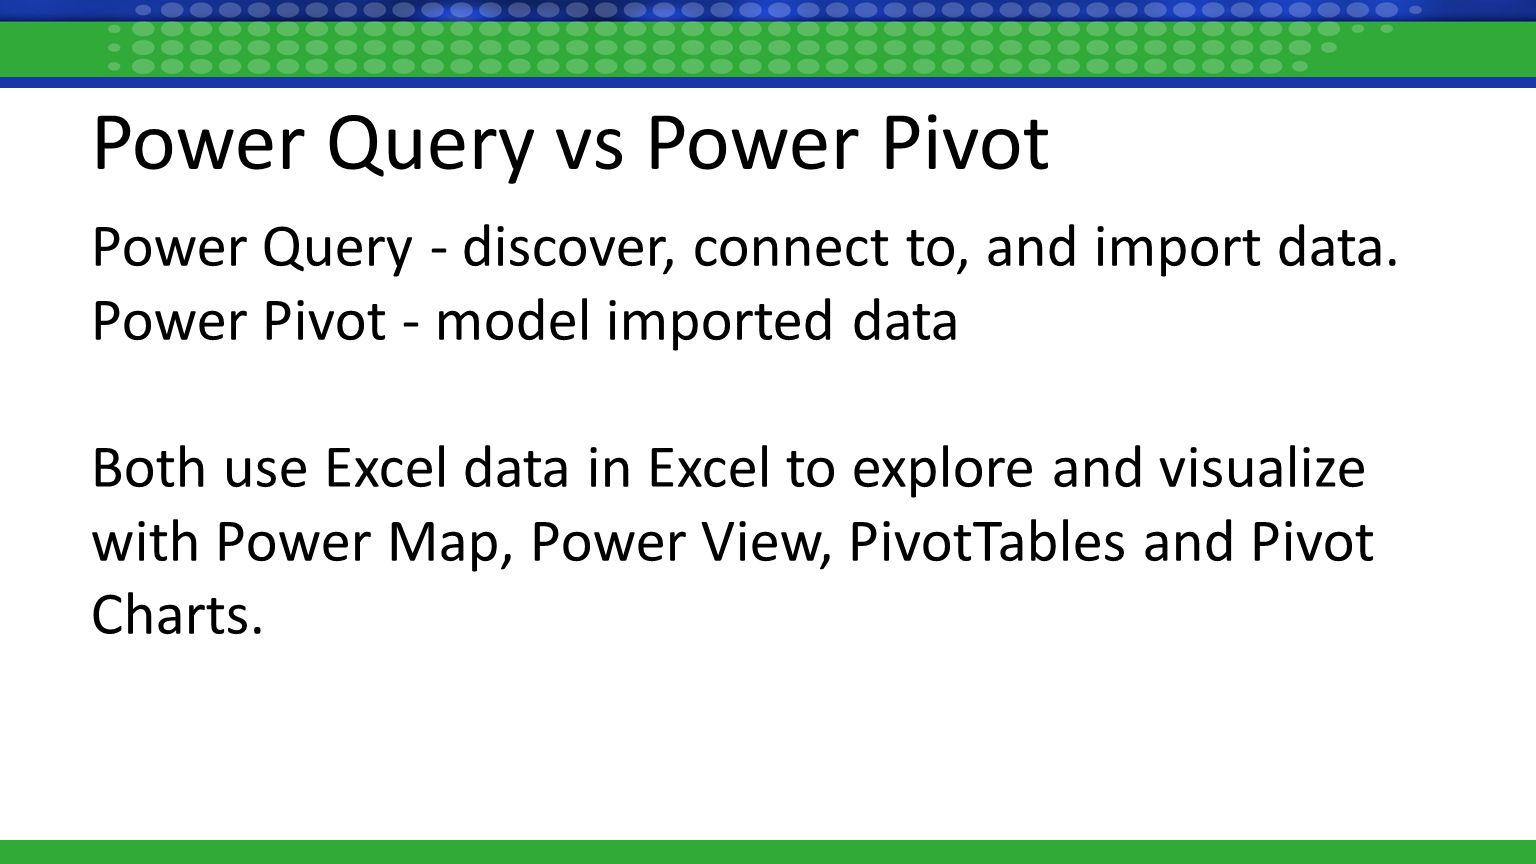 Power Query vs Power Pivot Power Query - discover, connect to, and import data.